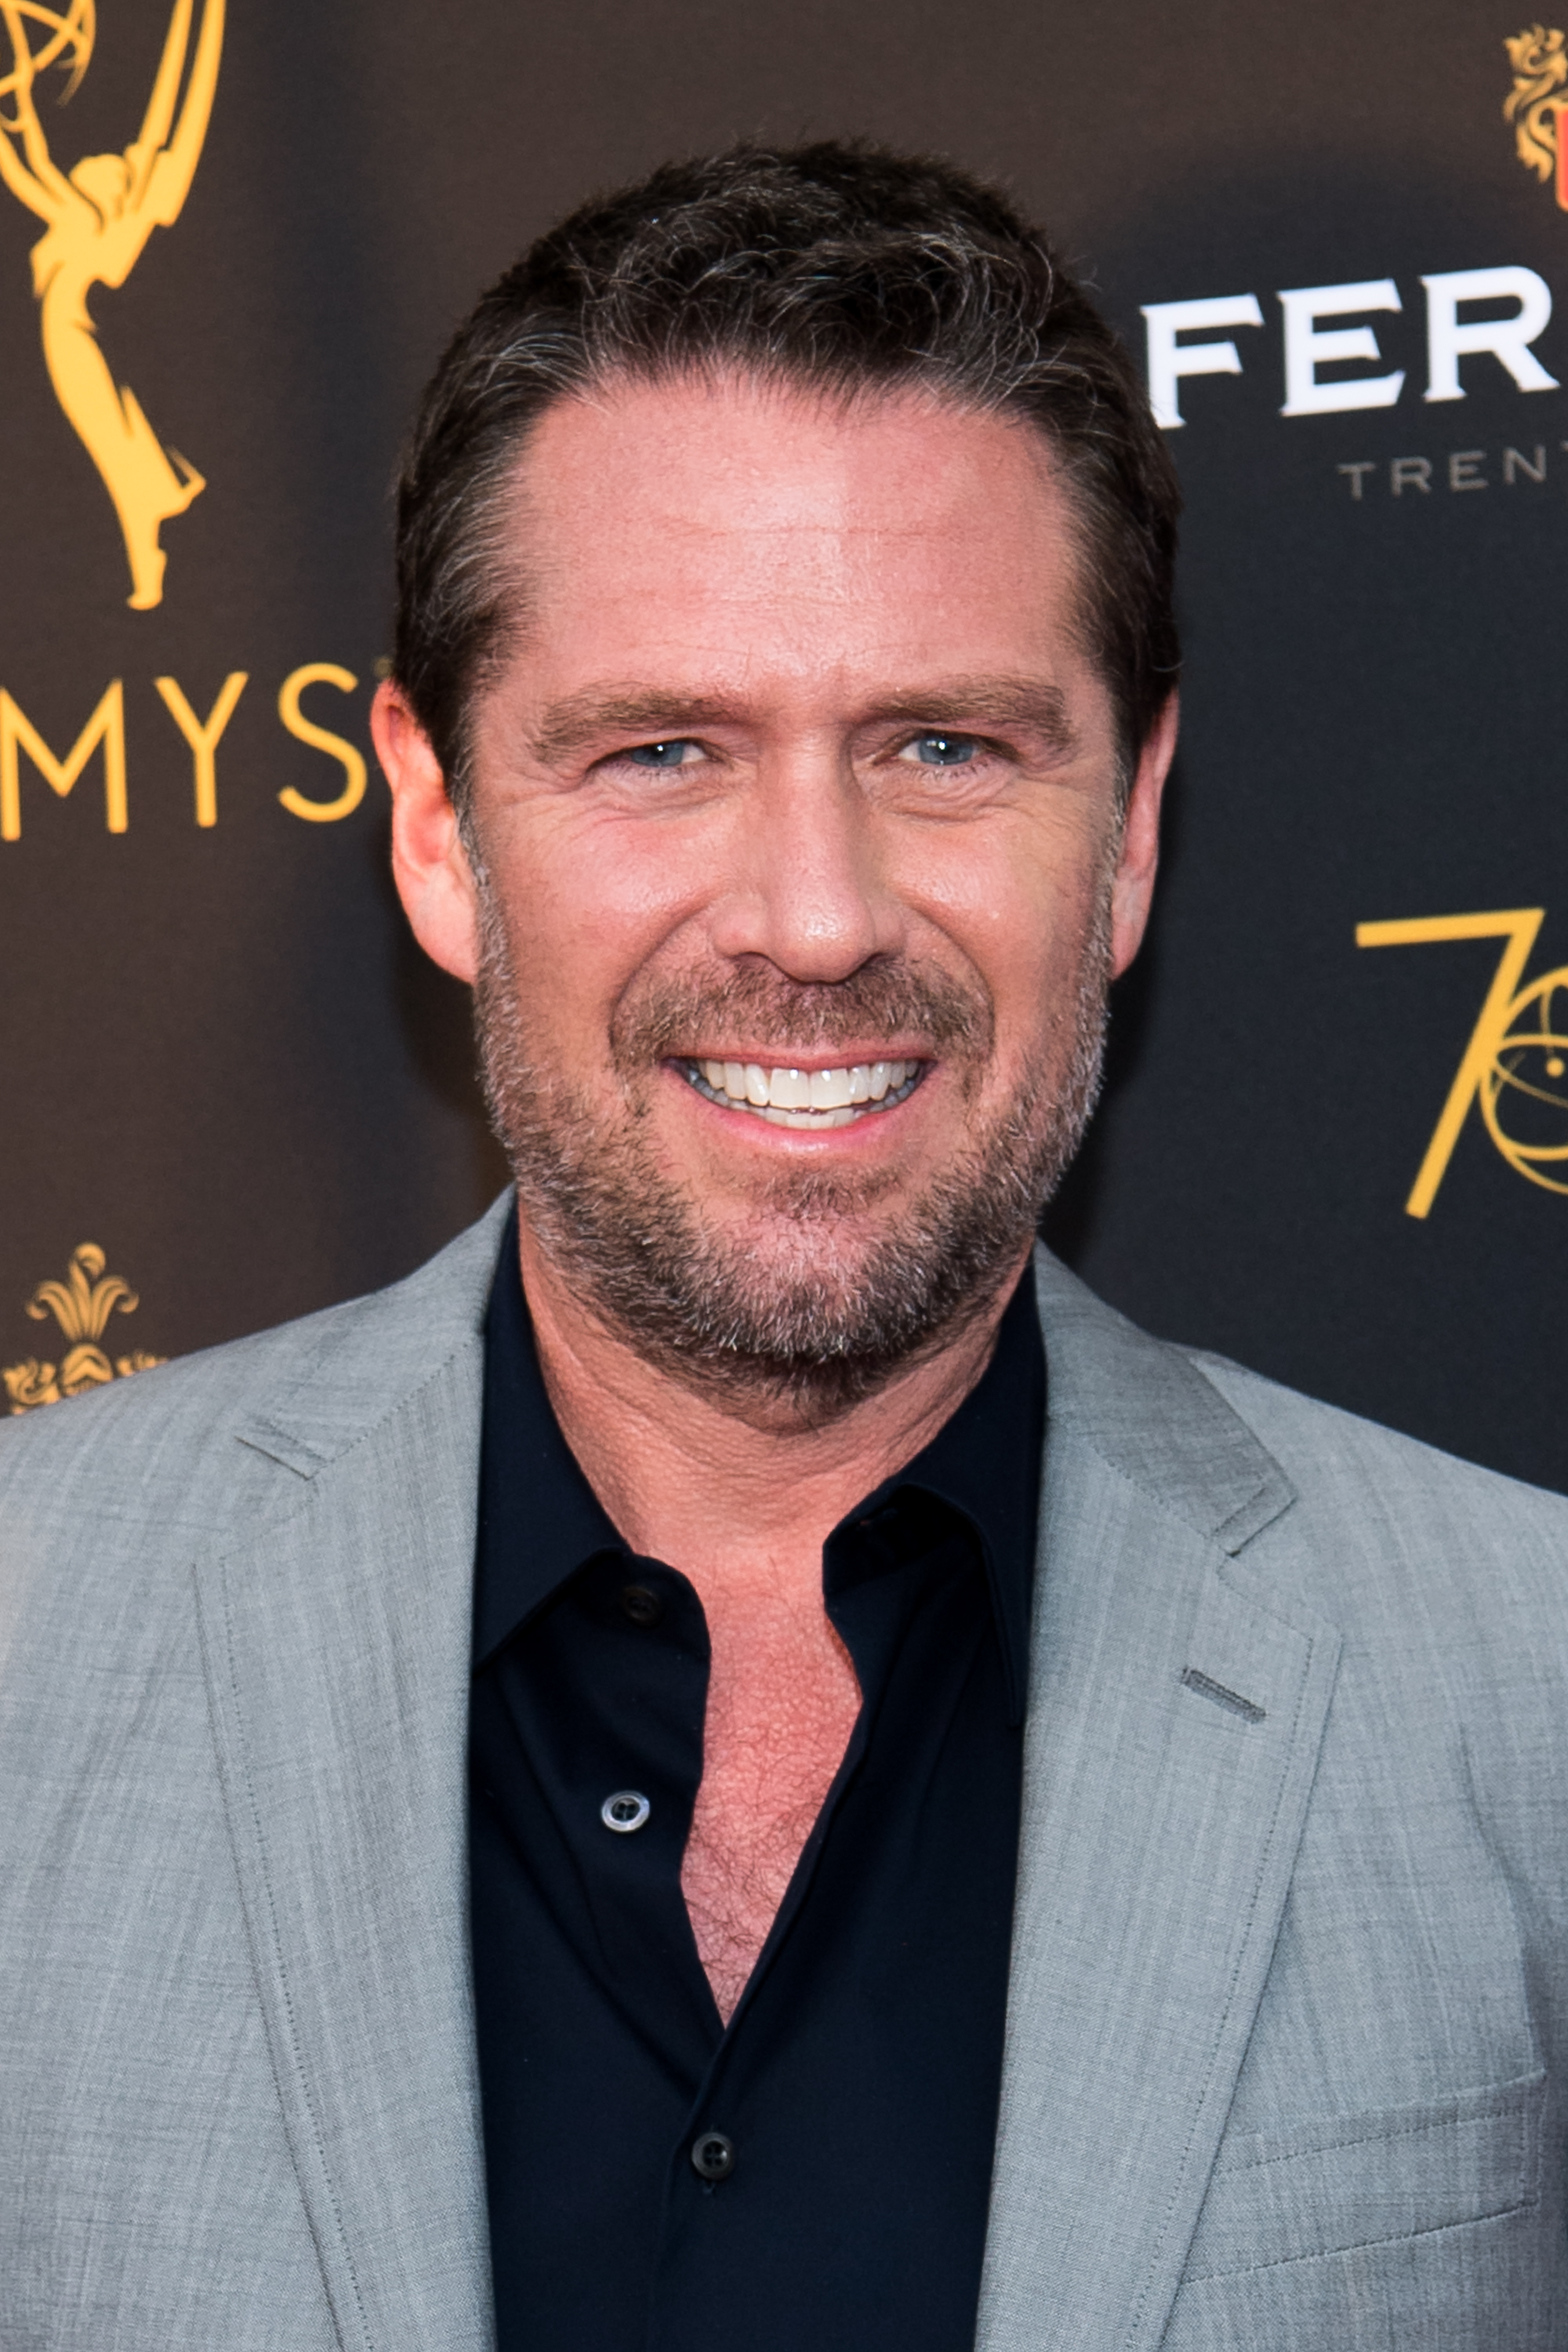 Actor Alexis Denisof attends the Television Academy's Performers Peer Group Celebration at NeueHouse Hollywood on August 20, 2018 in Los Angeles, California.